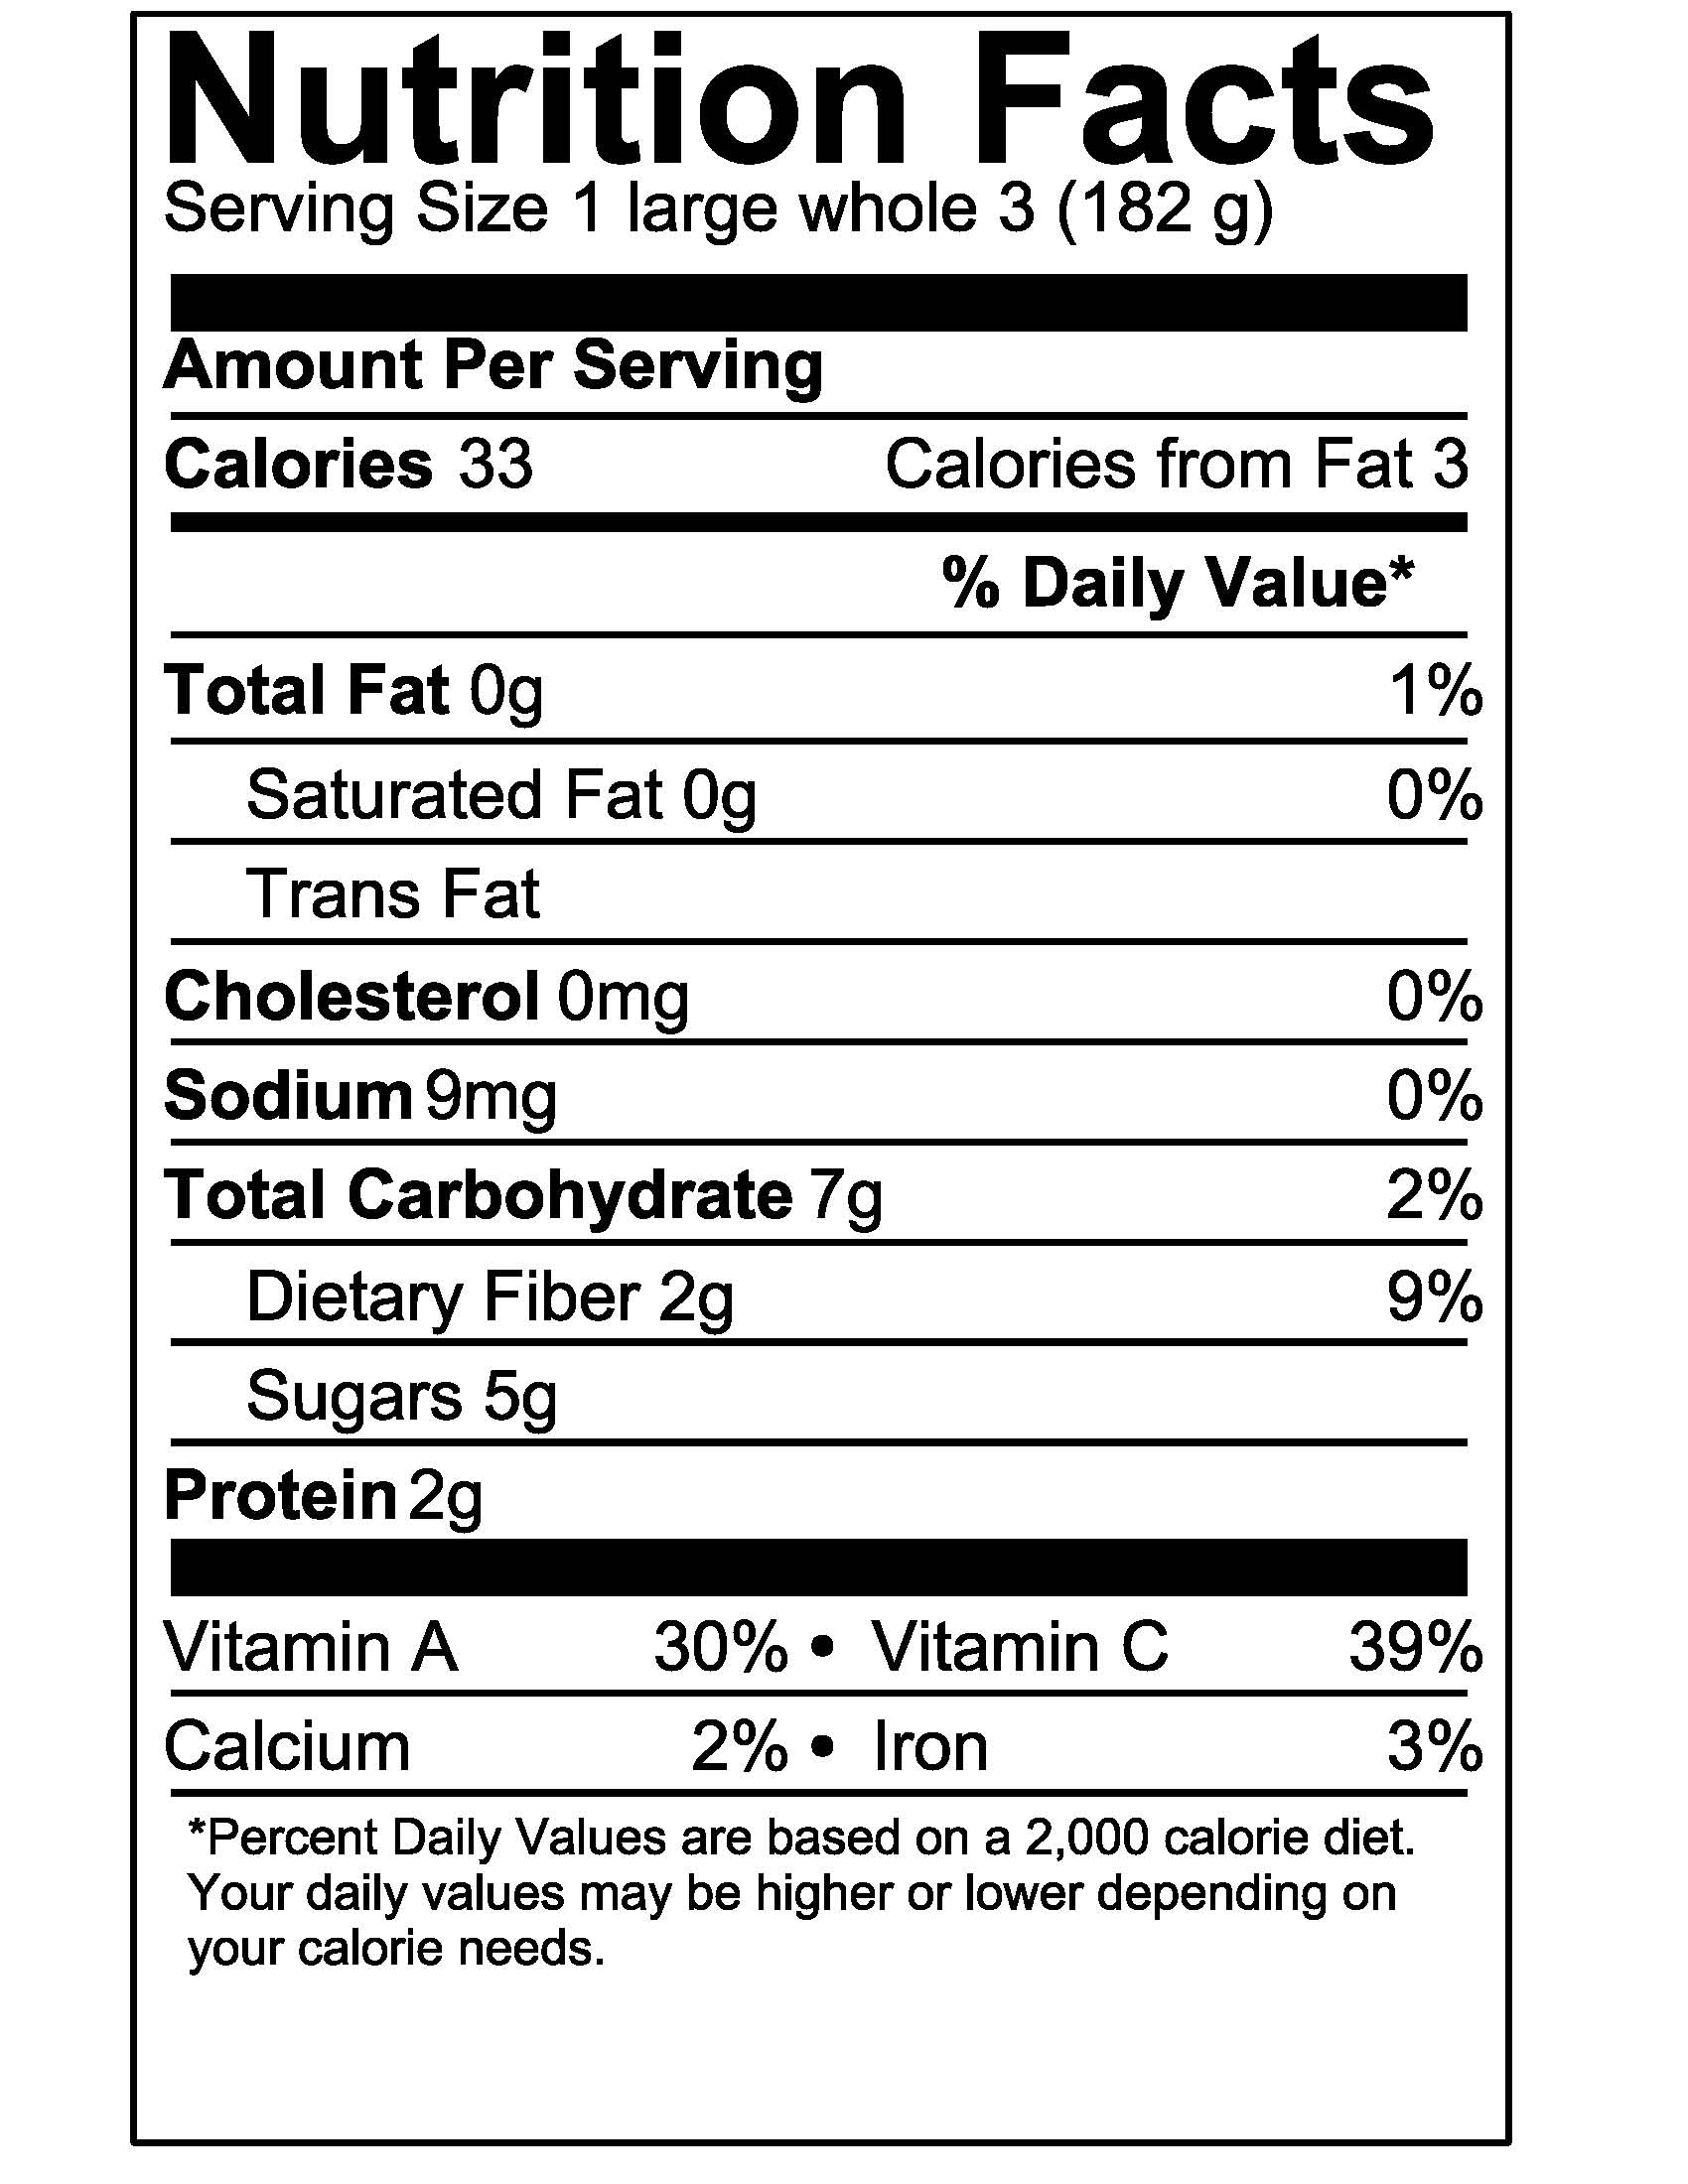 Nutrition Facts Label Template